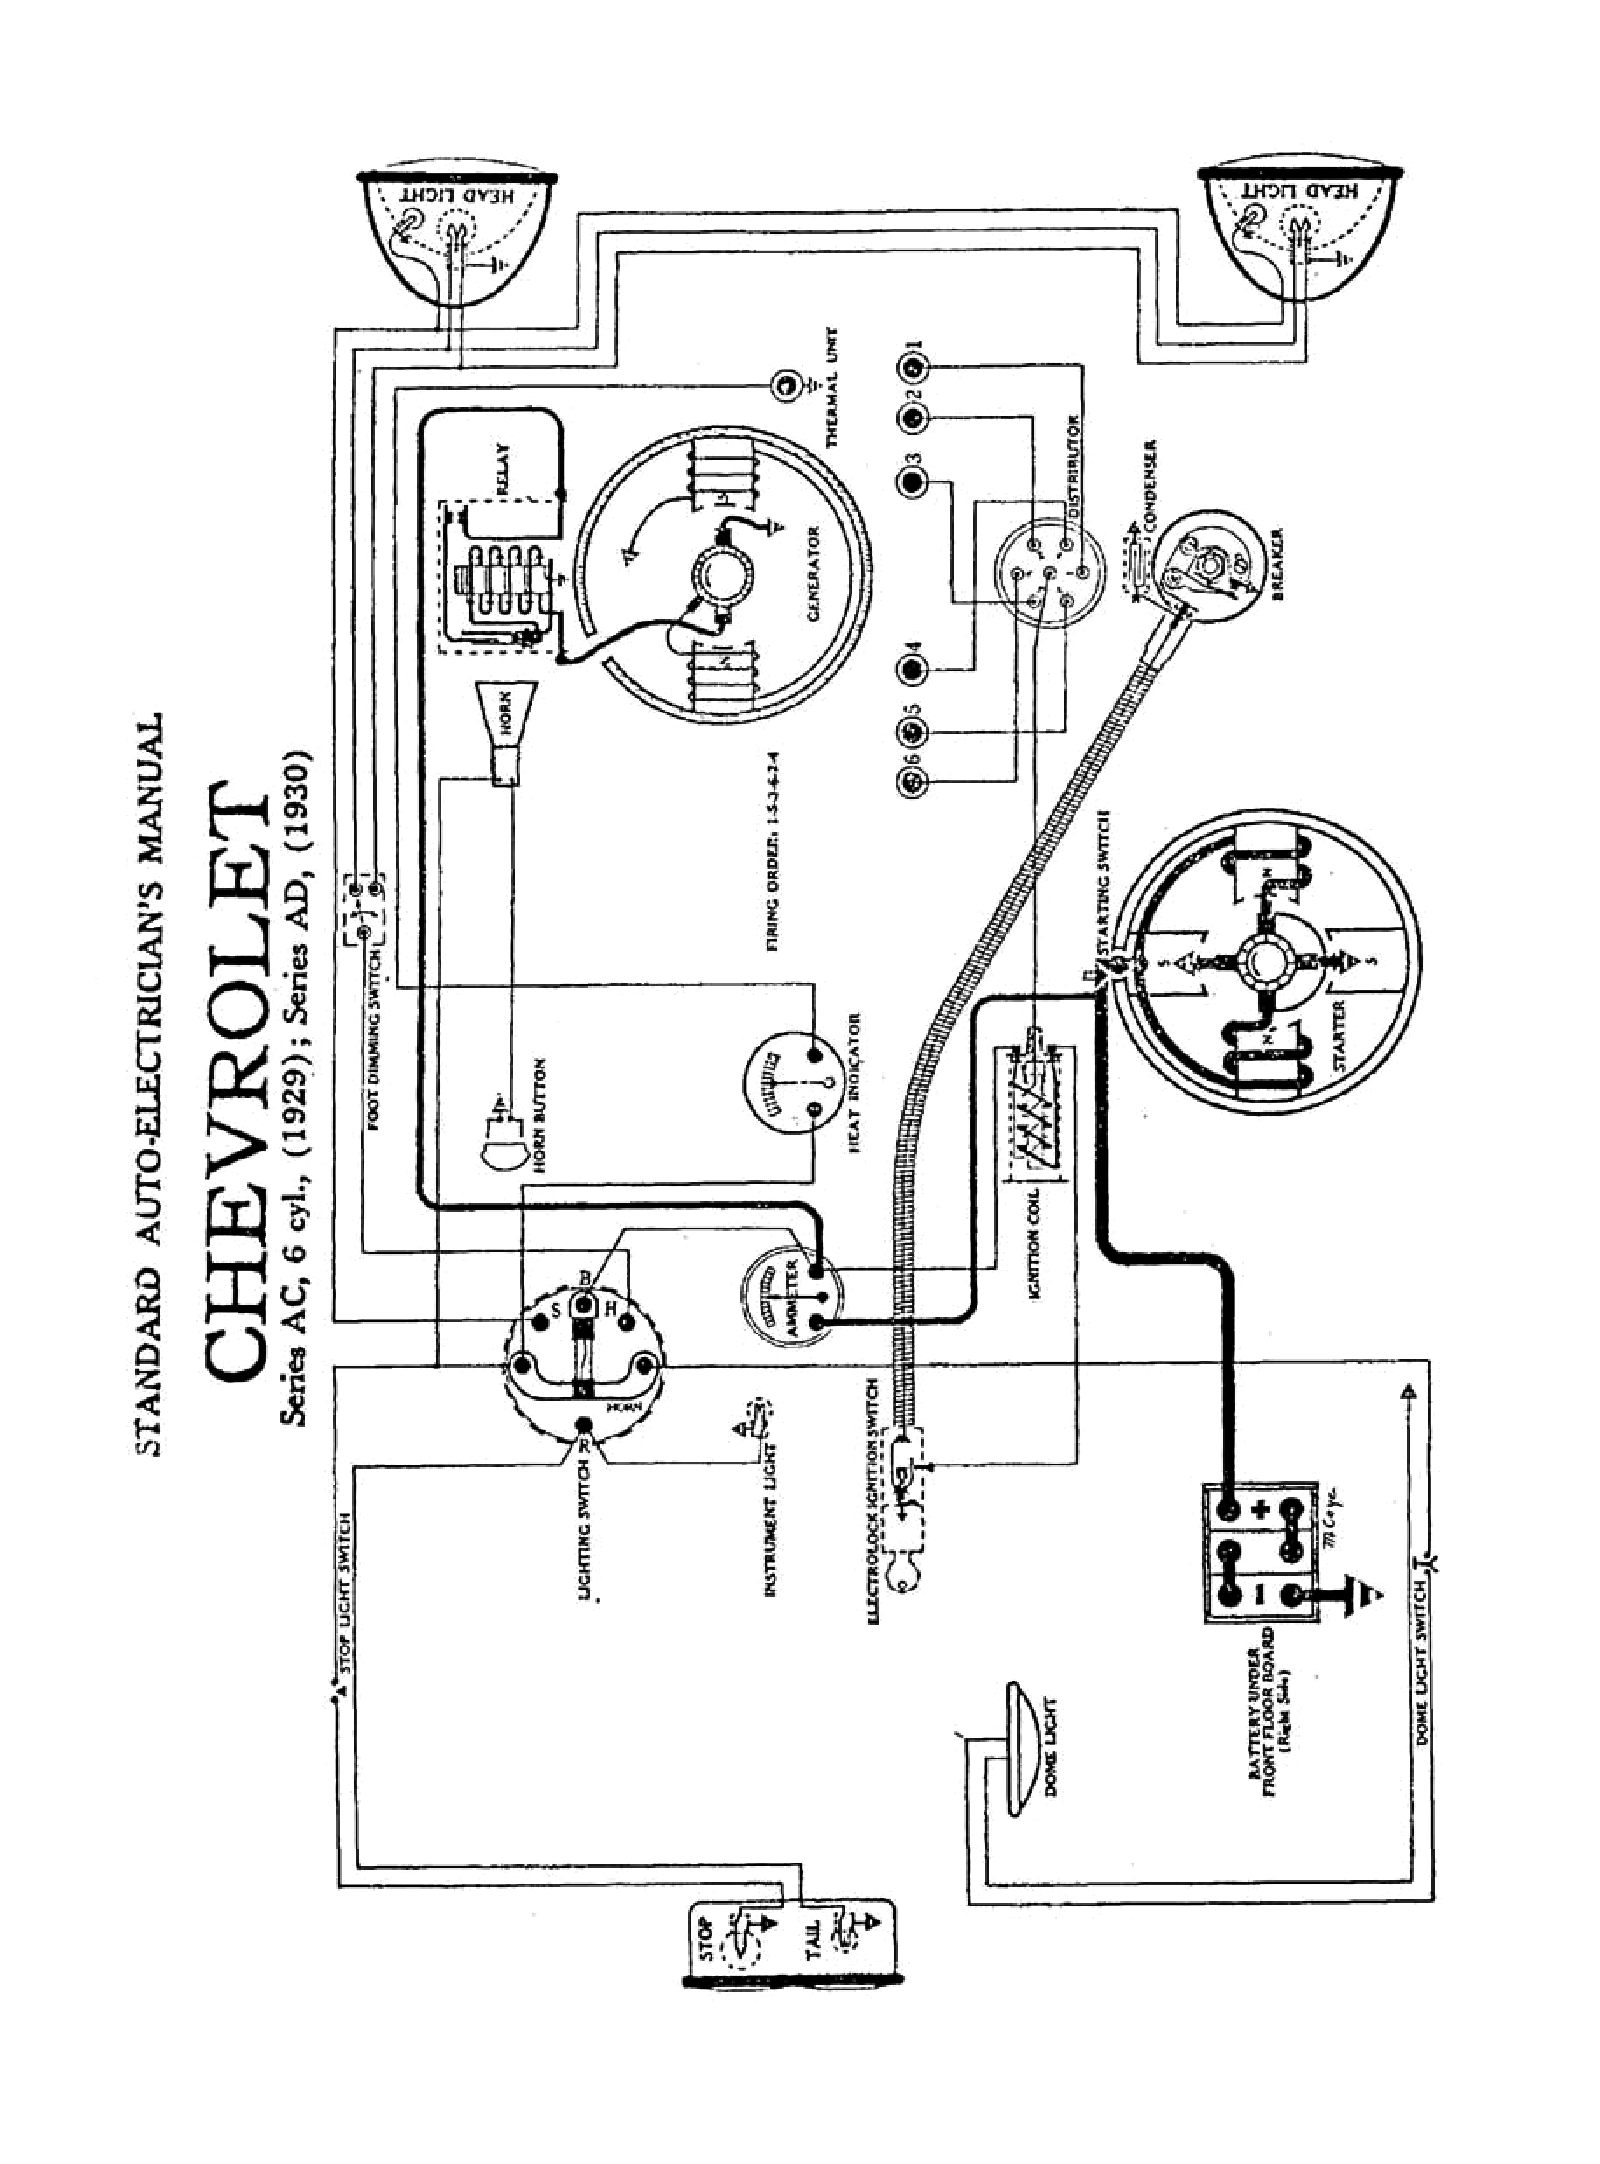 chevy wiring diagrams rh chevy oldcarmanualproject com Mercury Outboard Wiring Schematic Diagram 1997 Mercury Outboard Wiring Diagram